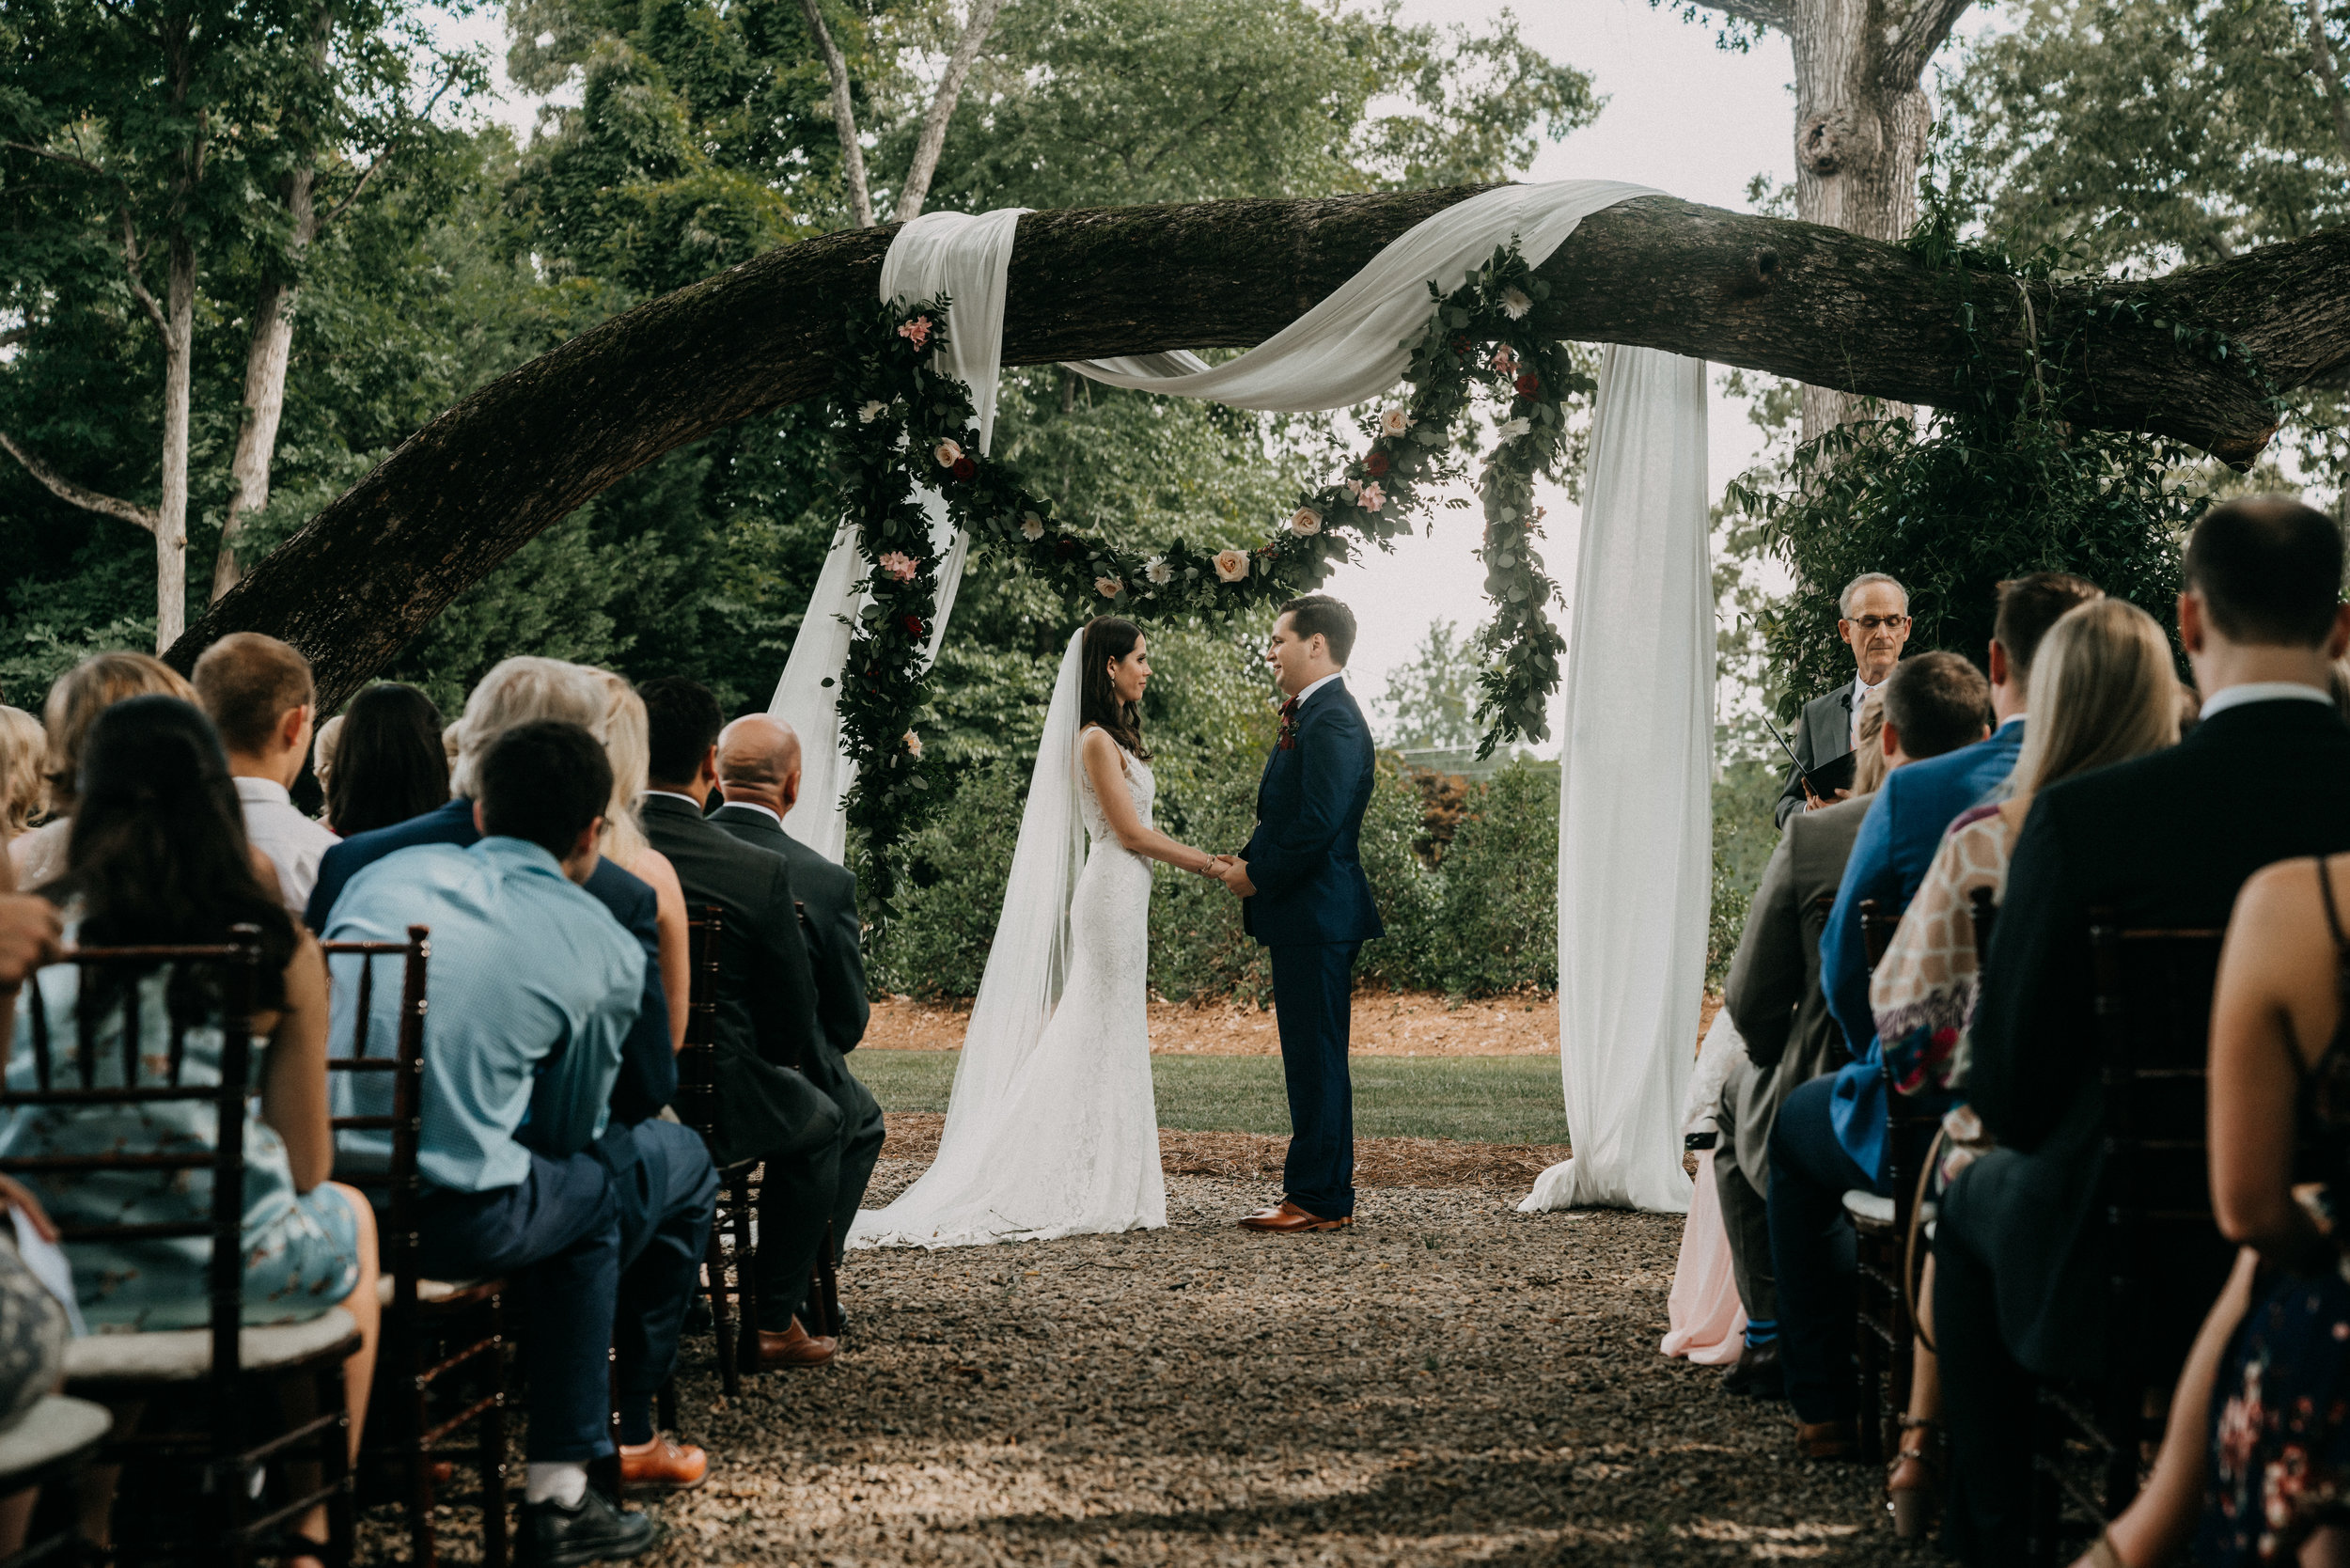 outdoor whitehead manor wedding in charlotte nc - Under a canopy of trees, Shellie and Jarrett tied the knot and partied the night away in Charlotte, North Carolina.